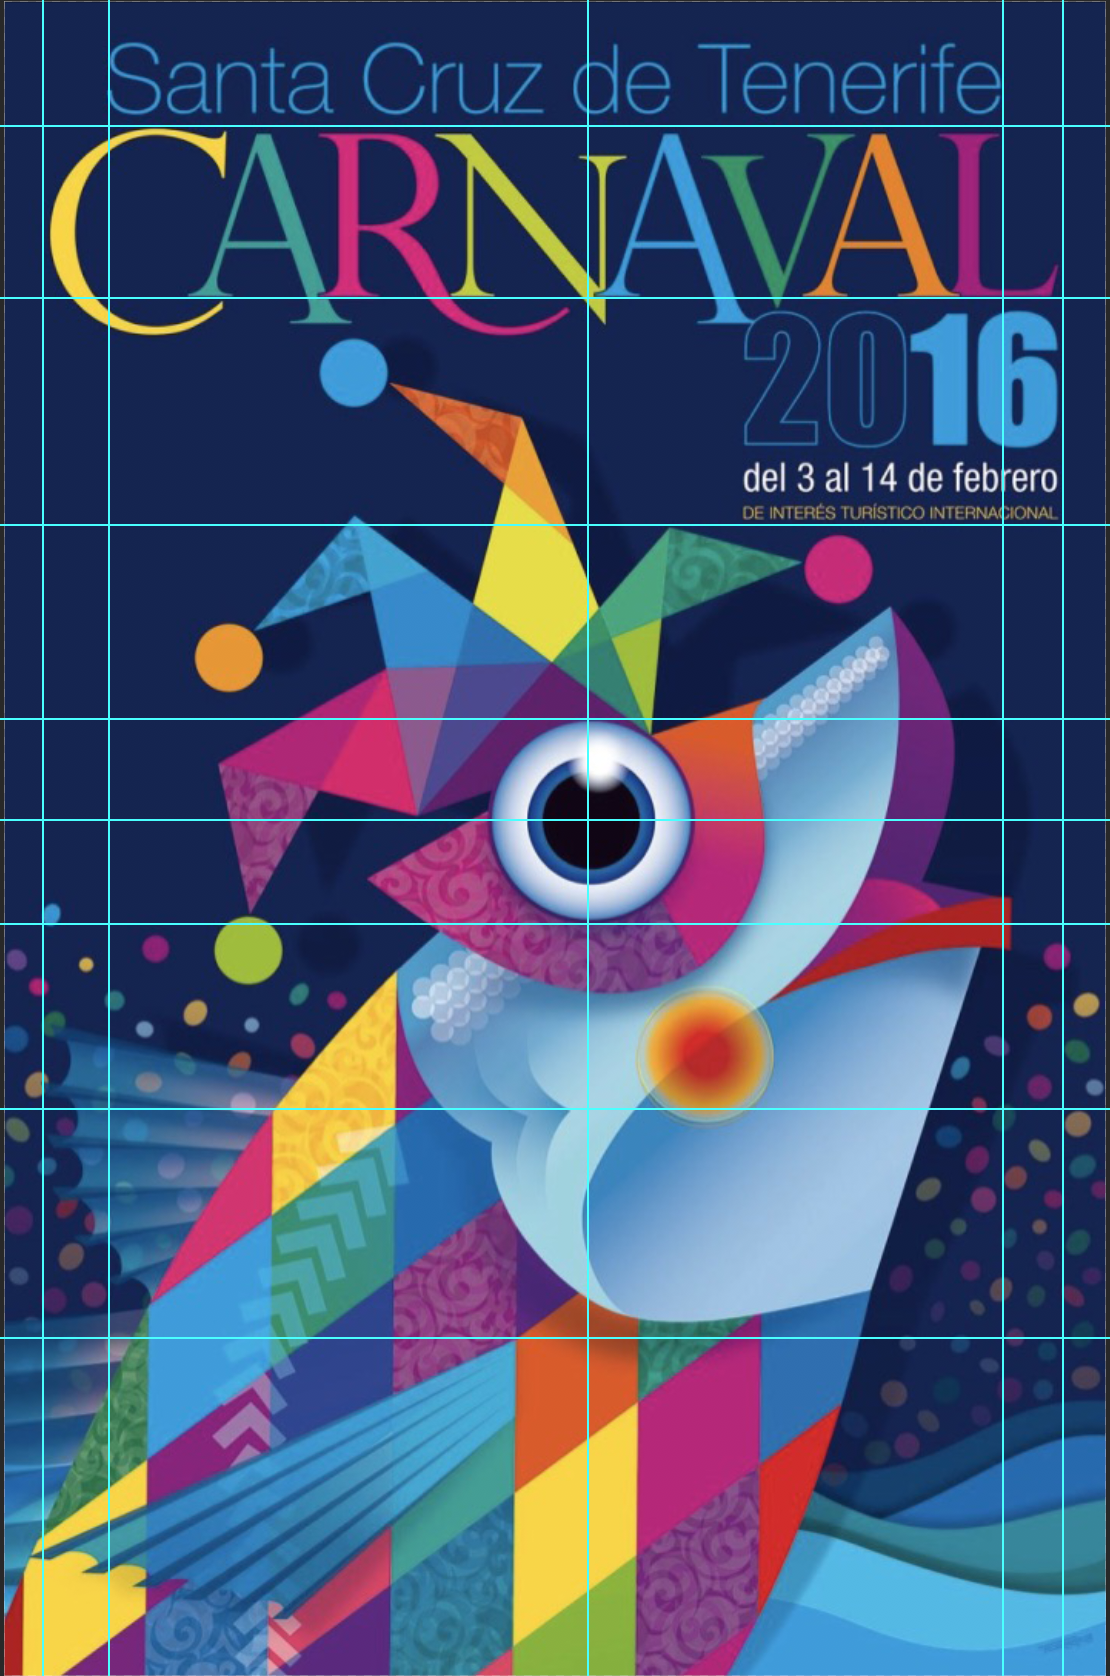 Underlying Grid System Analyzing the Official Poster Promoting Carnaval for 2016 in Santa Cruz de Tenerife in the Canary Islands, Spain.